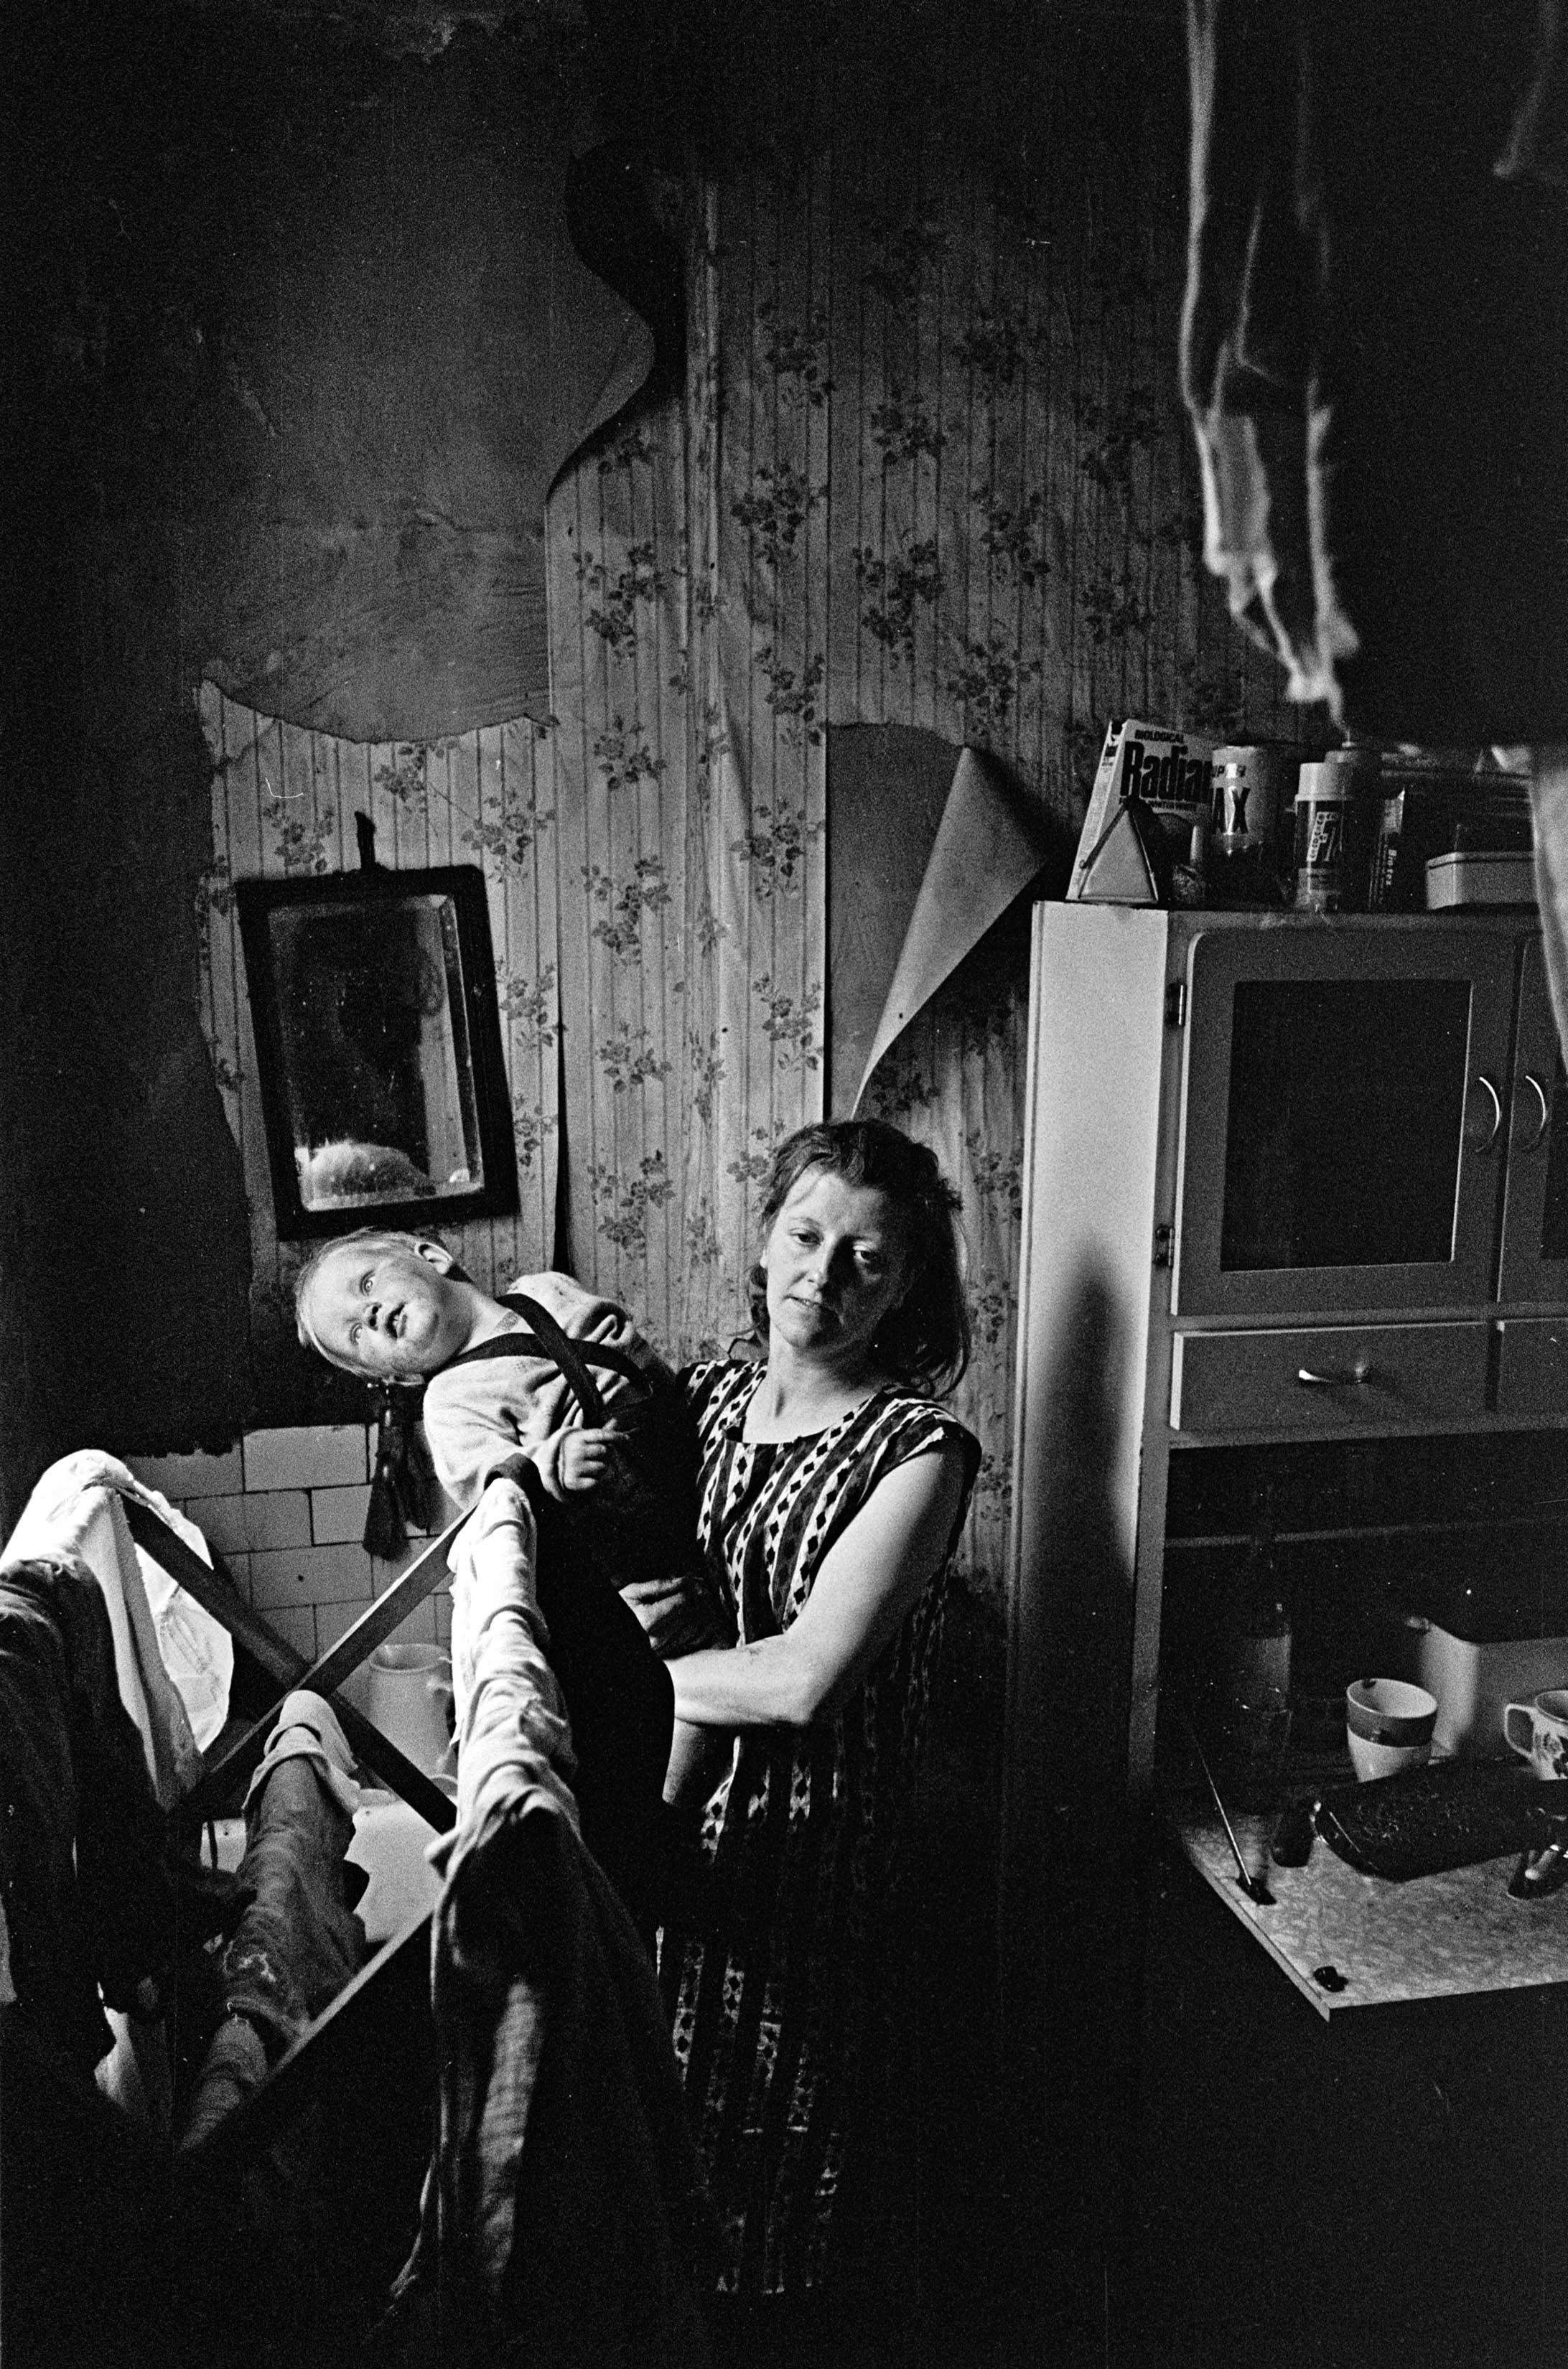 The Interiors Of This Modern Mexican House Open To: Powerful Photos Of Slum Life And Squalor In Liverpool 1969